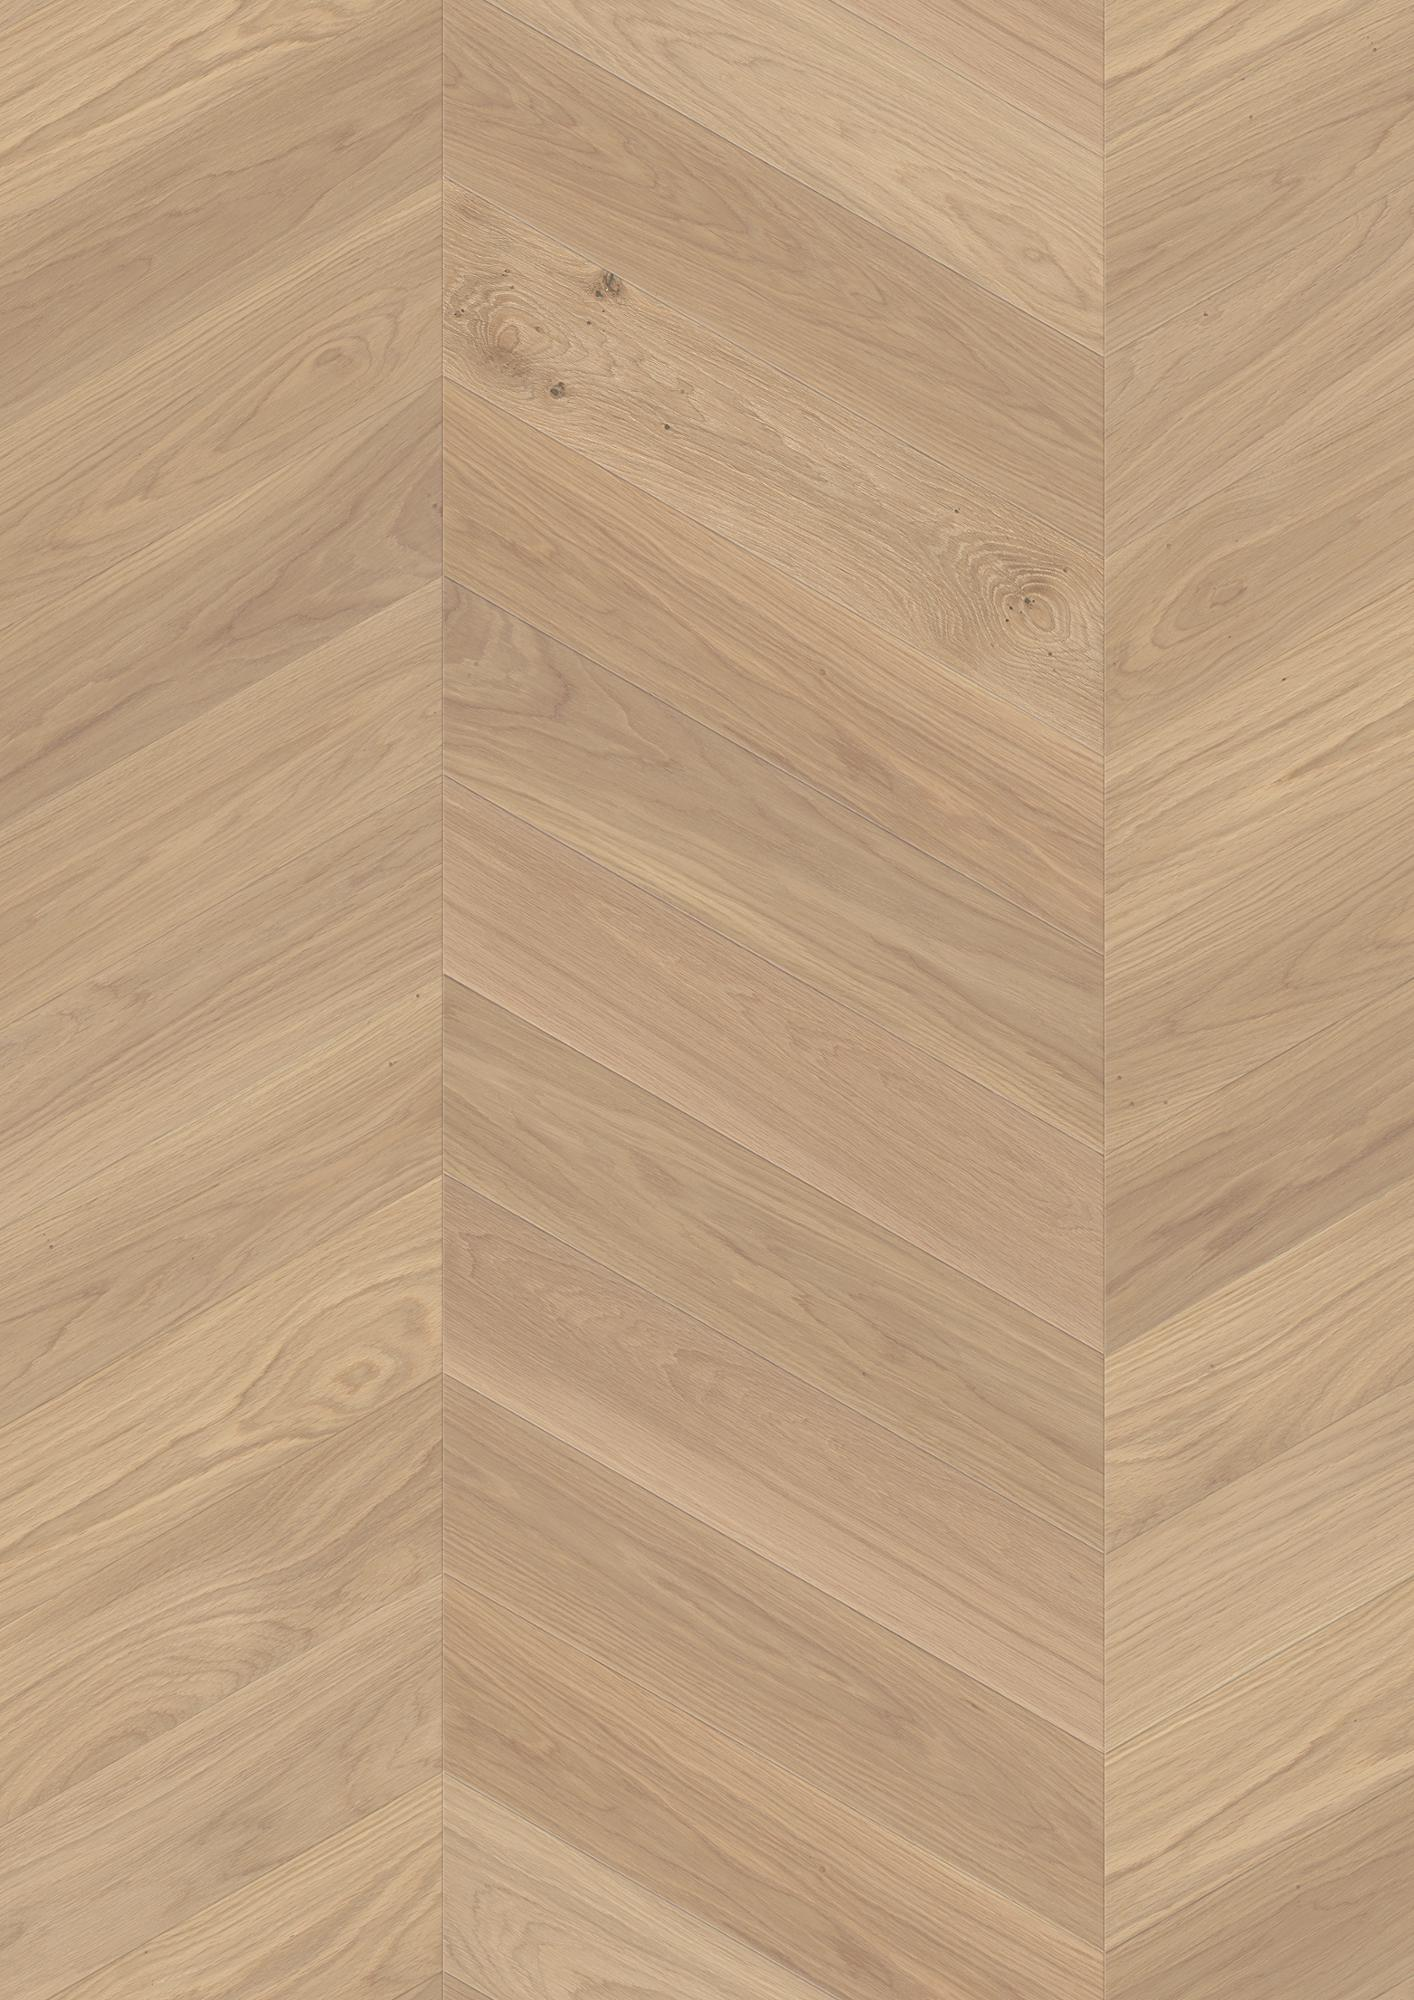 Oak Adagio white, Live Natural oil white, Brushed, Beveled 4V, Plank Chevron, 35/64x5 7/16x24 1/16inch